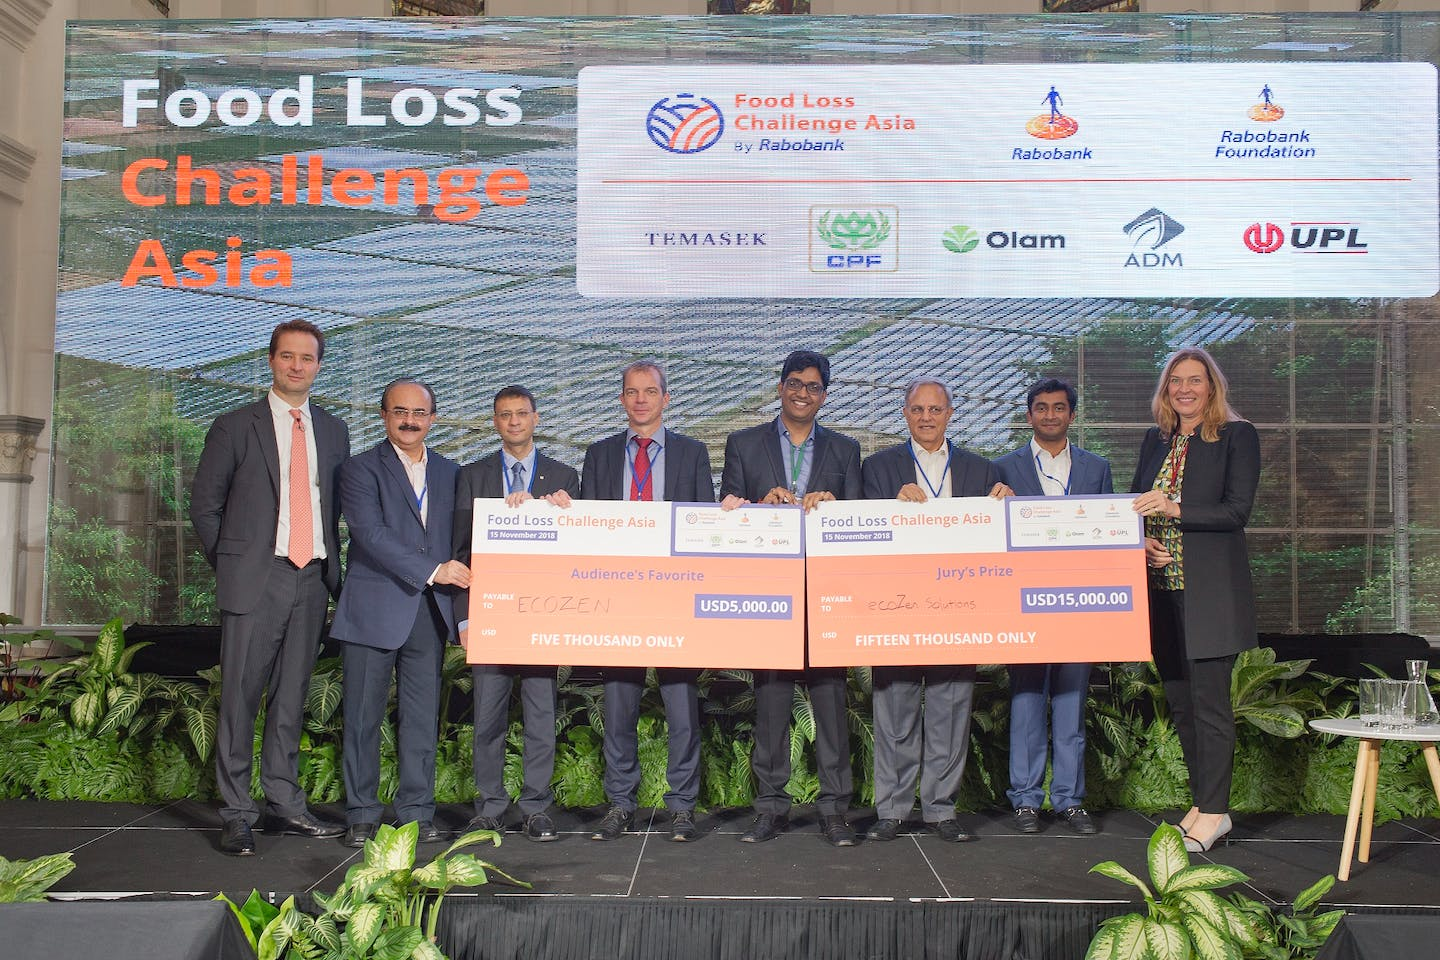 India's Ecozen wins inaugural Rabobank Food Loss Challenge Asia